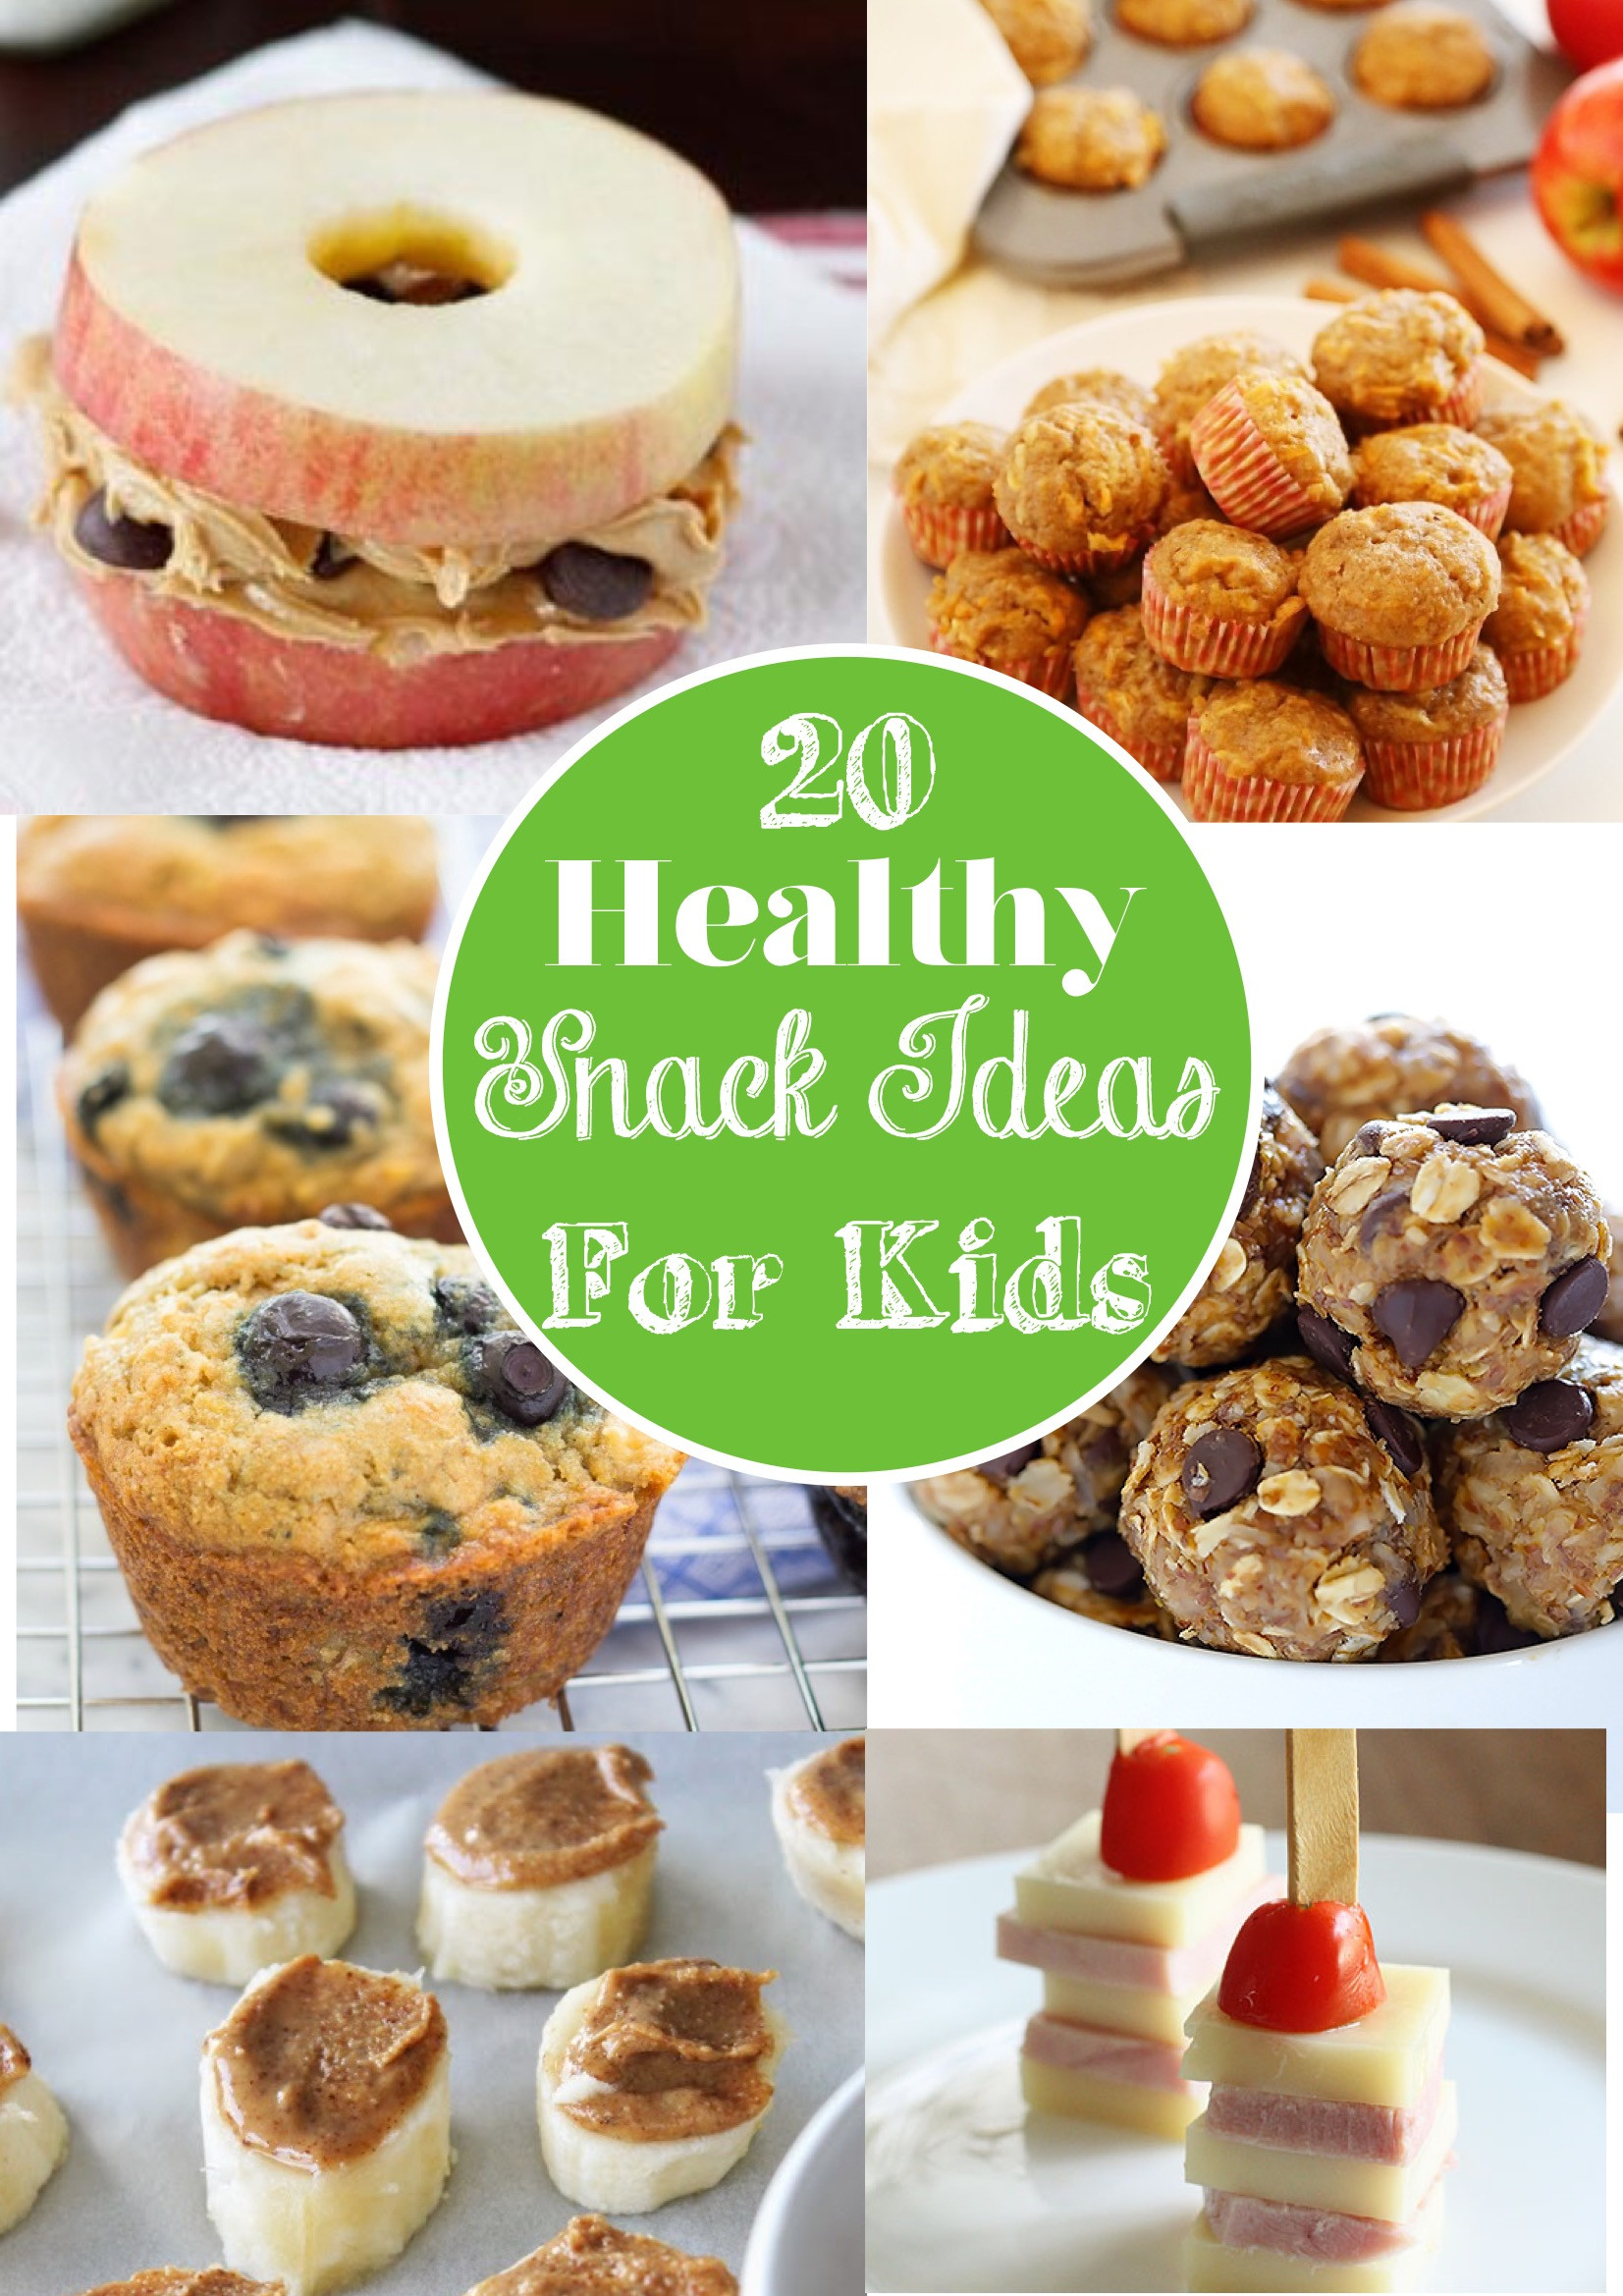 Healthy Fun Snacks For Kids  20 Healthy Snack Ideas For Kids Snack Smart